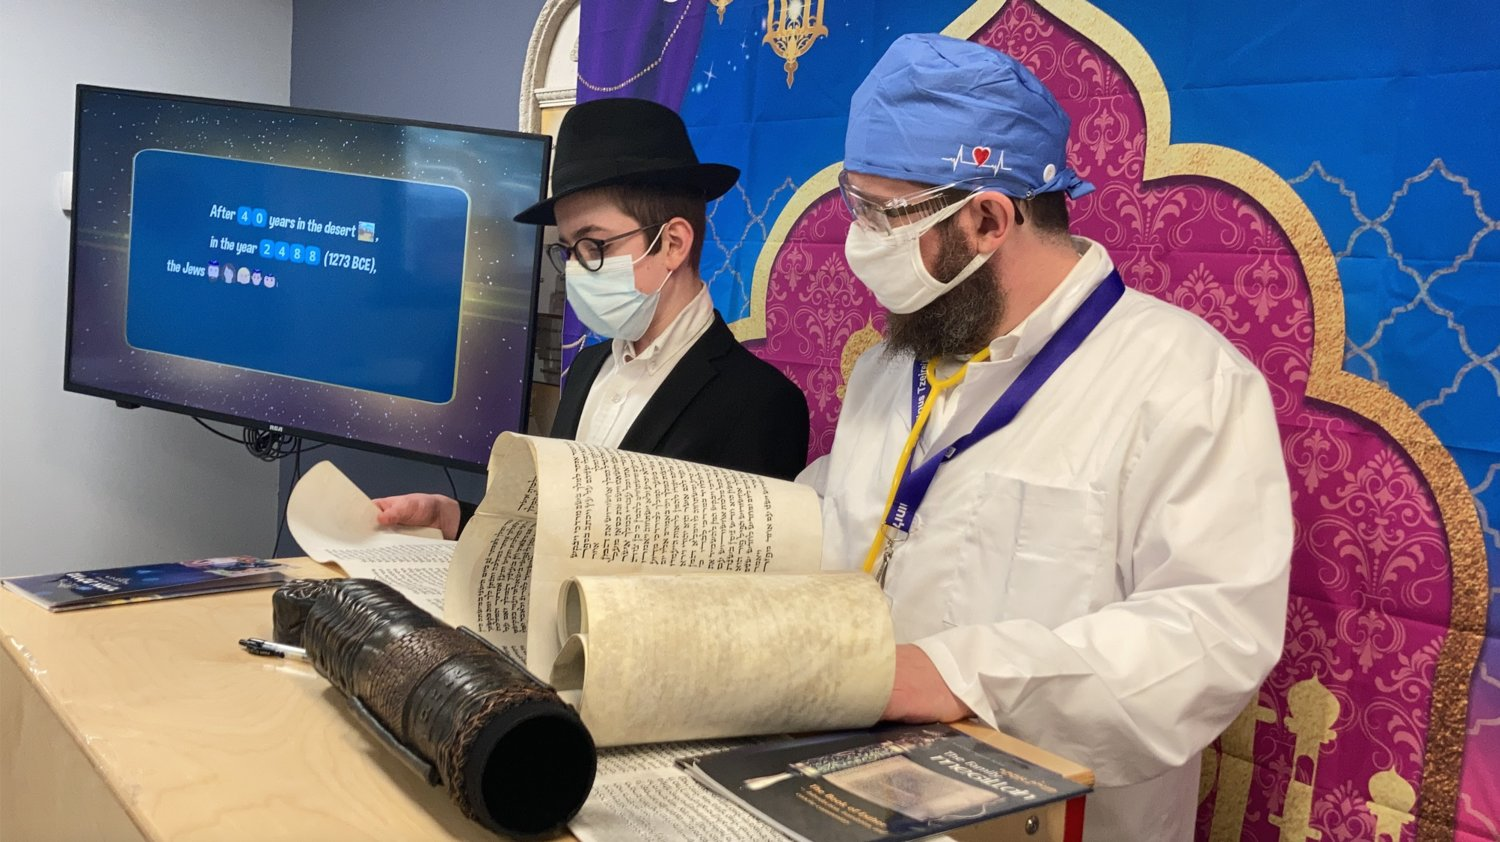 Rabbi Shimon Kramer, of the Chabad Center for Jewish Life, in Merrick, delivered an in-person Megillah reading to congregants in celebration of Purim.